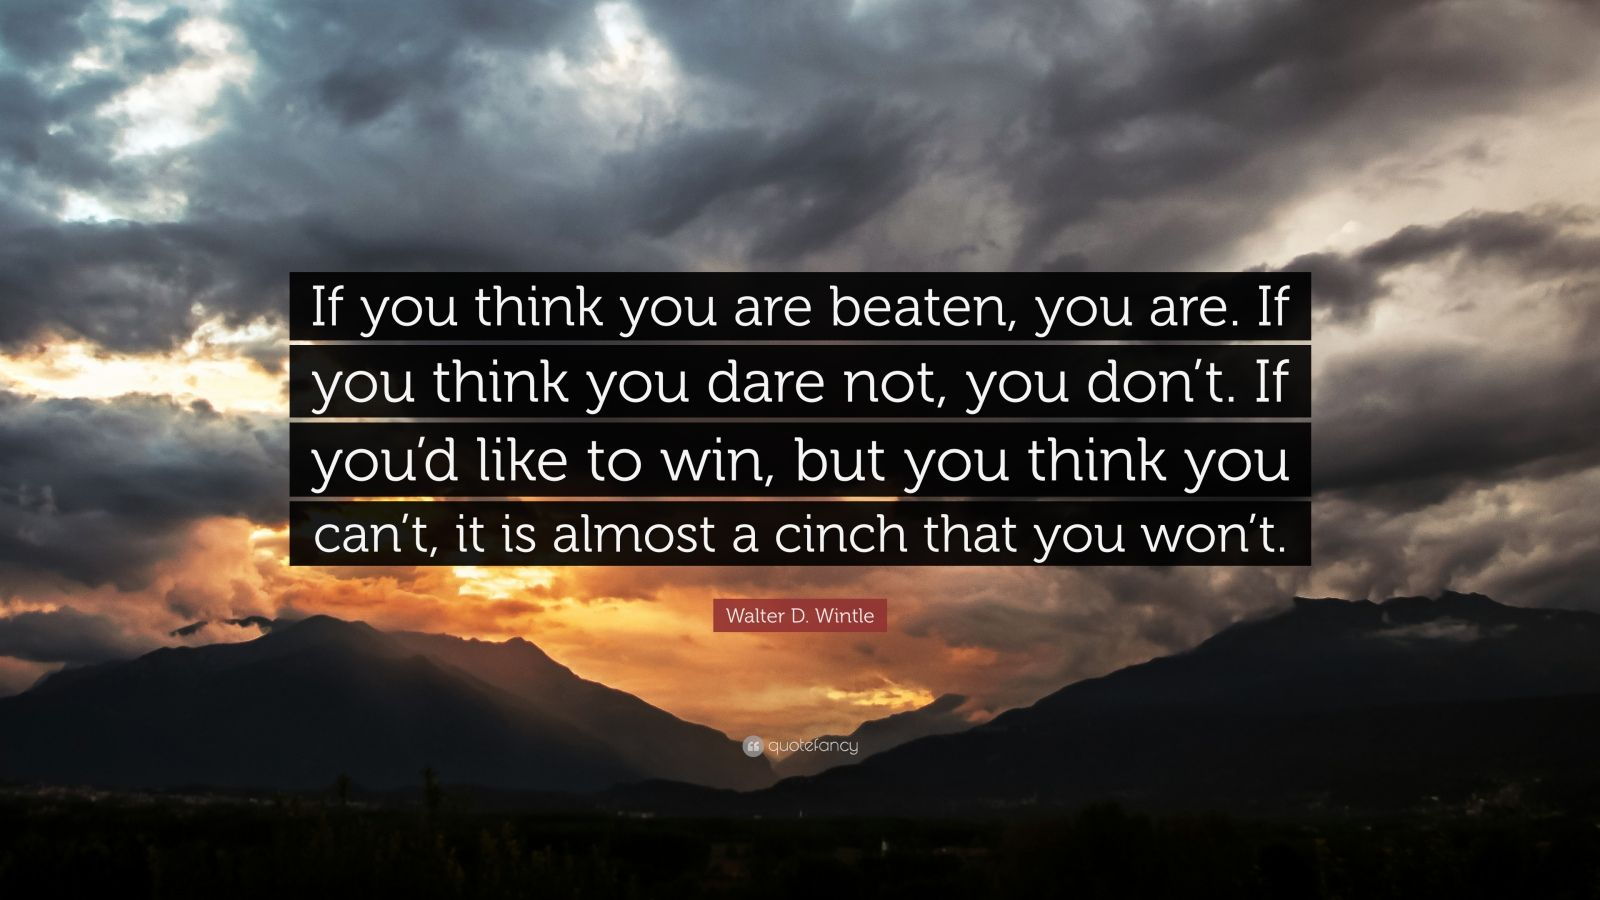 """Walter D. Wintle Quote: """"If you think you are beaten, you are. If you think you dare not, you don't. If you'd like to win, but you think you can't, it is almost a cinch that you won't."""""""